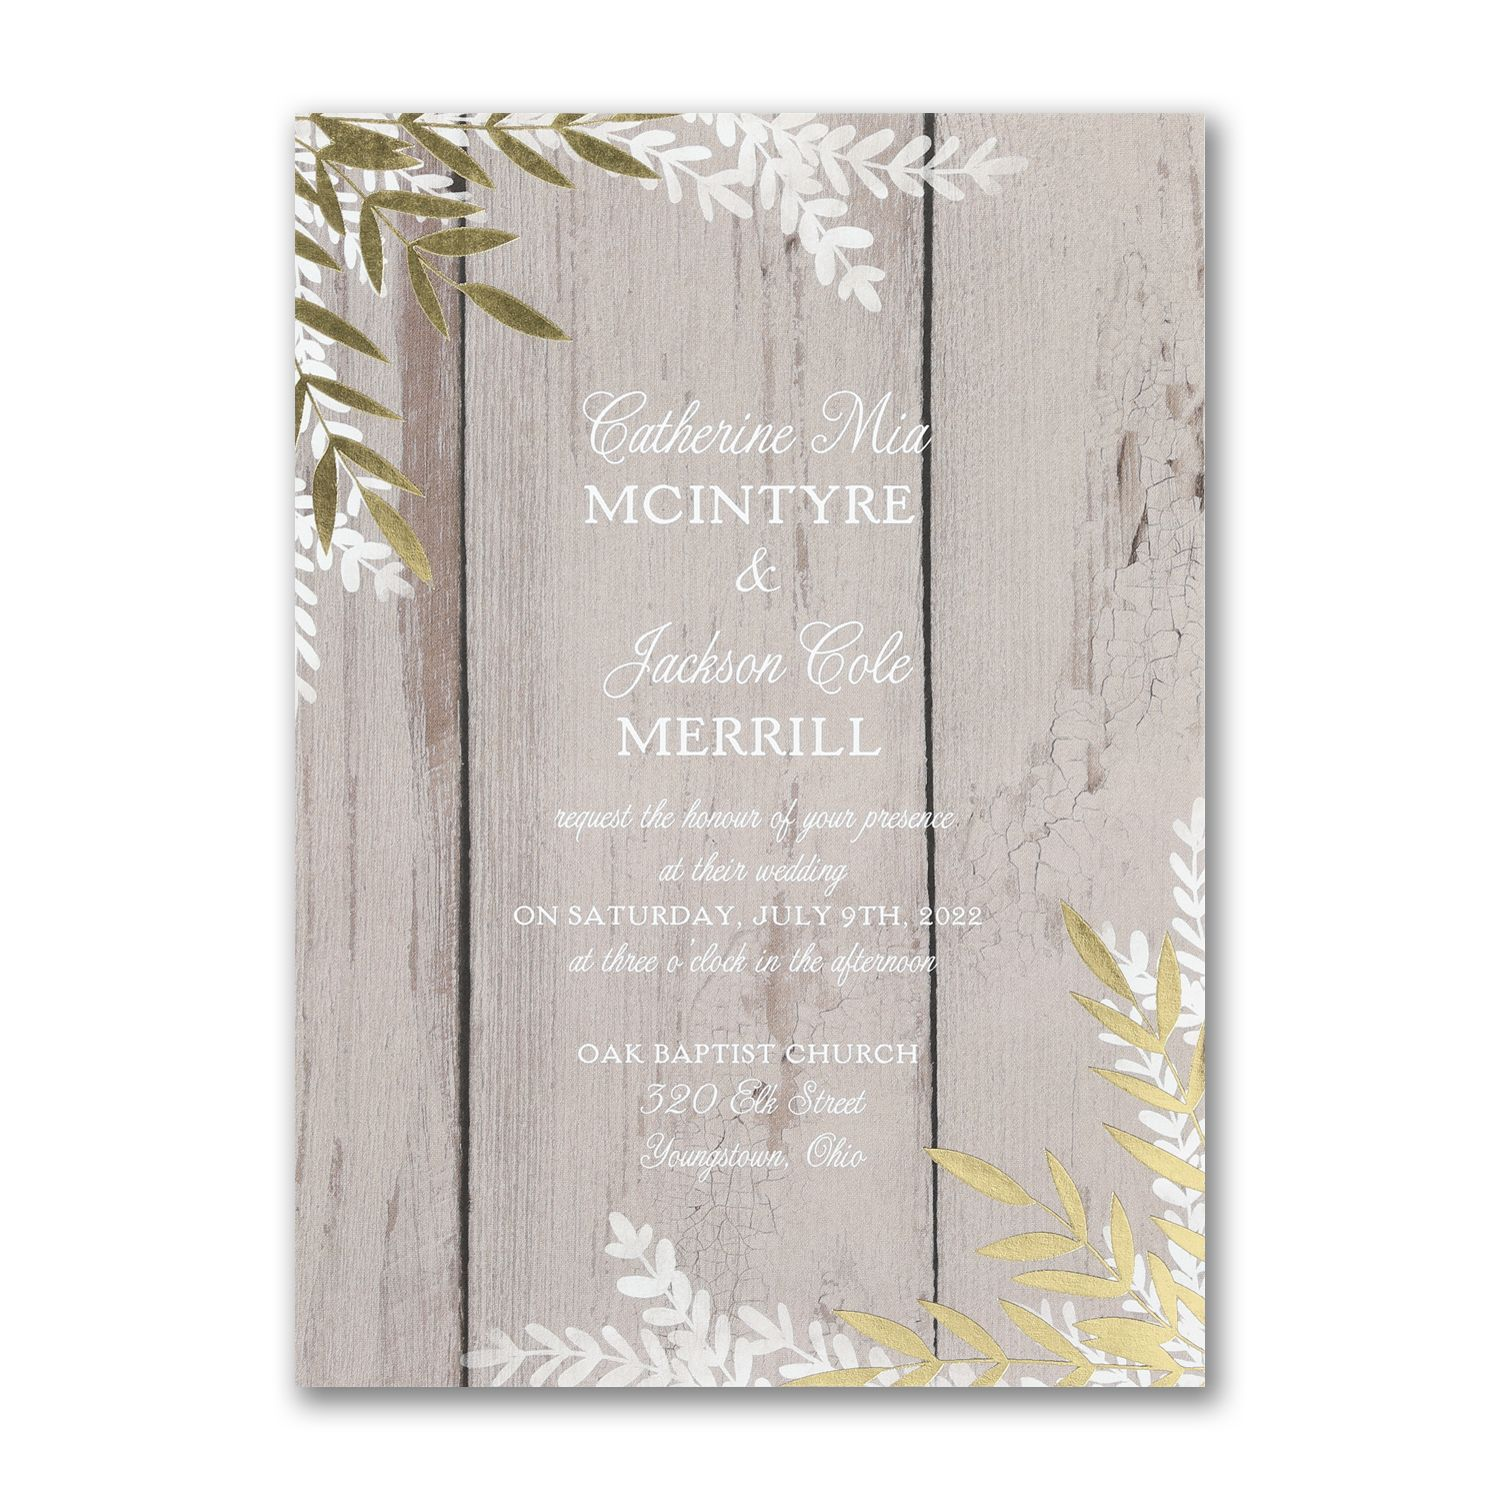 Rustic Beauty Invitation Country Wedding Invitations Wedding